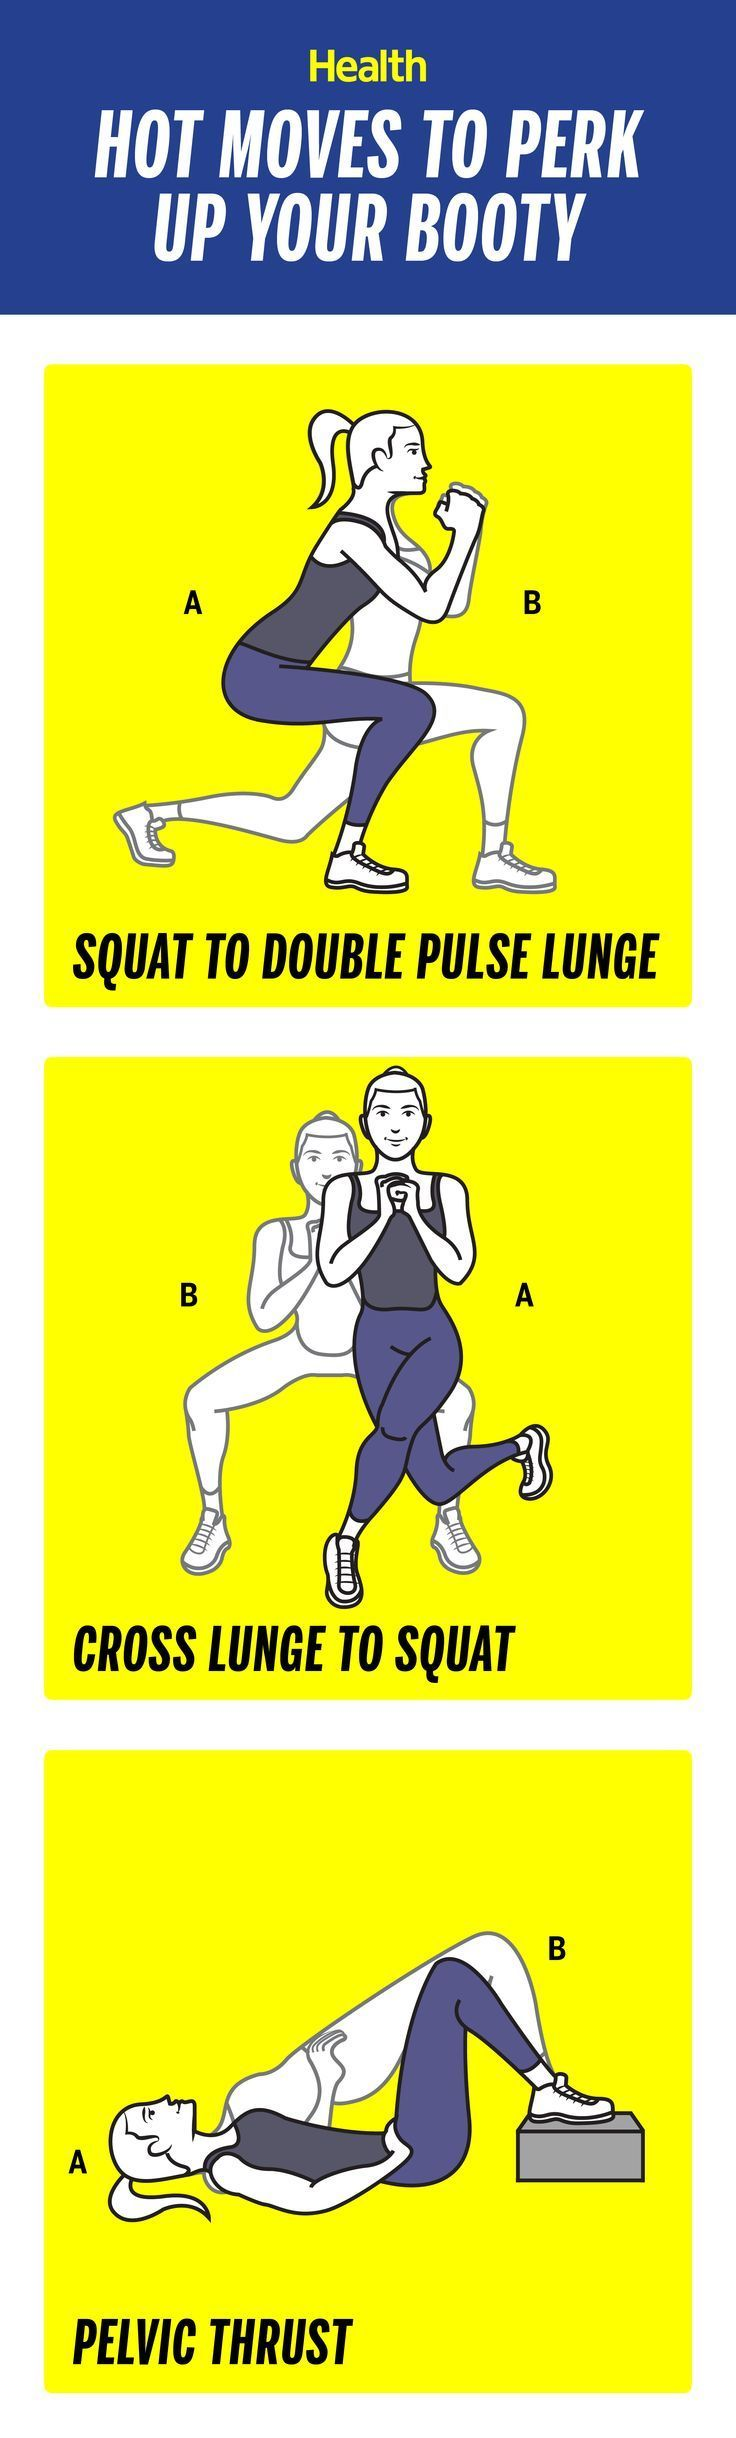 How to perk up your booty in 3 weeks: These moves will help to lift and tighten your butt in no time!   Health.com